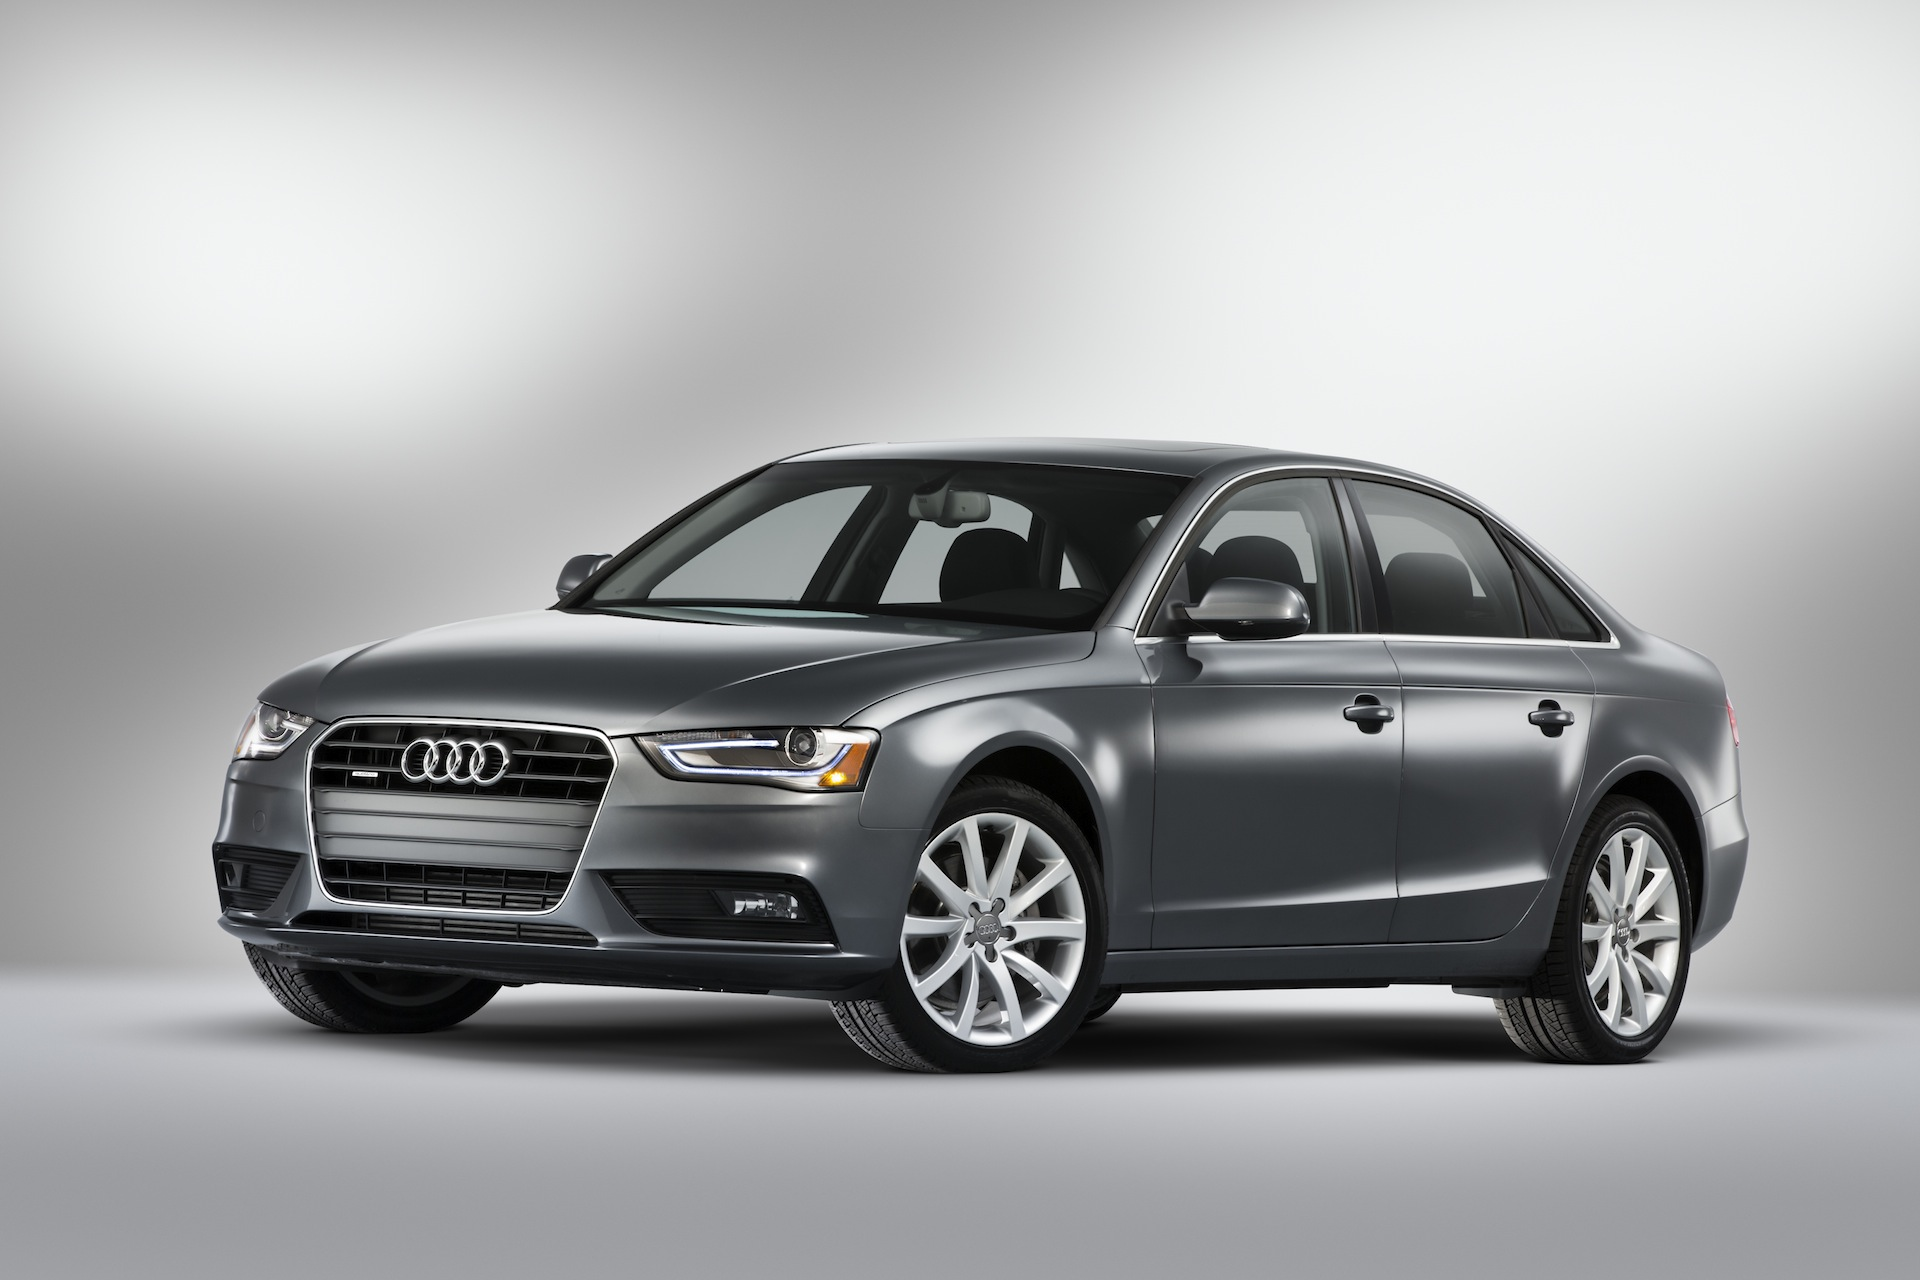 Bmw Of Fresno >> 2014 Audi A4 Review, Ratings, Specs, Prices, and Photos - The Car Connection